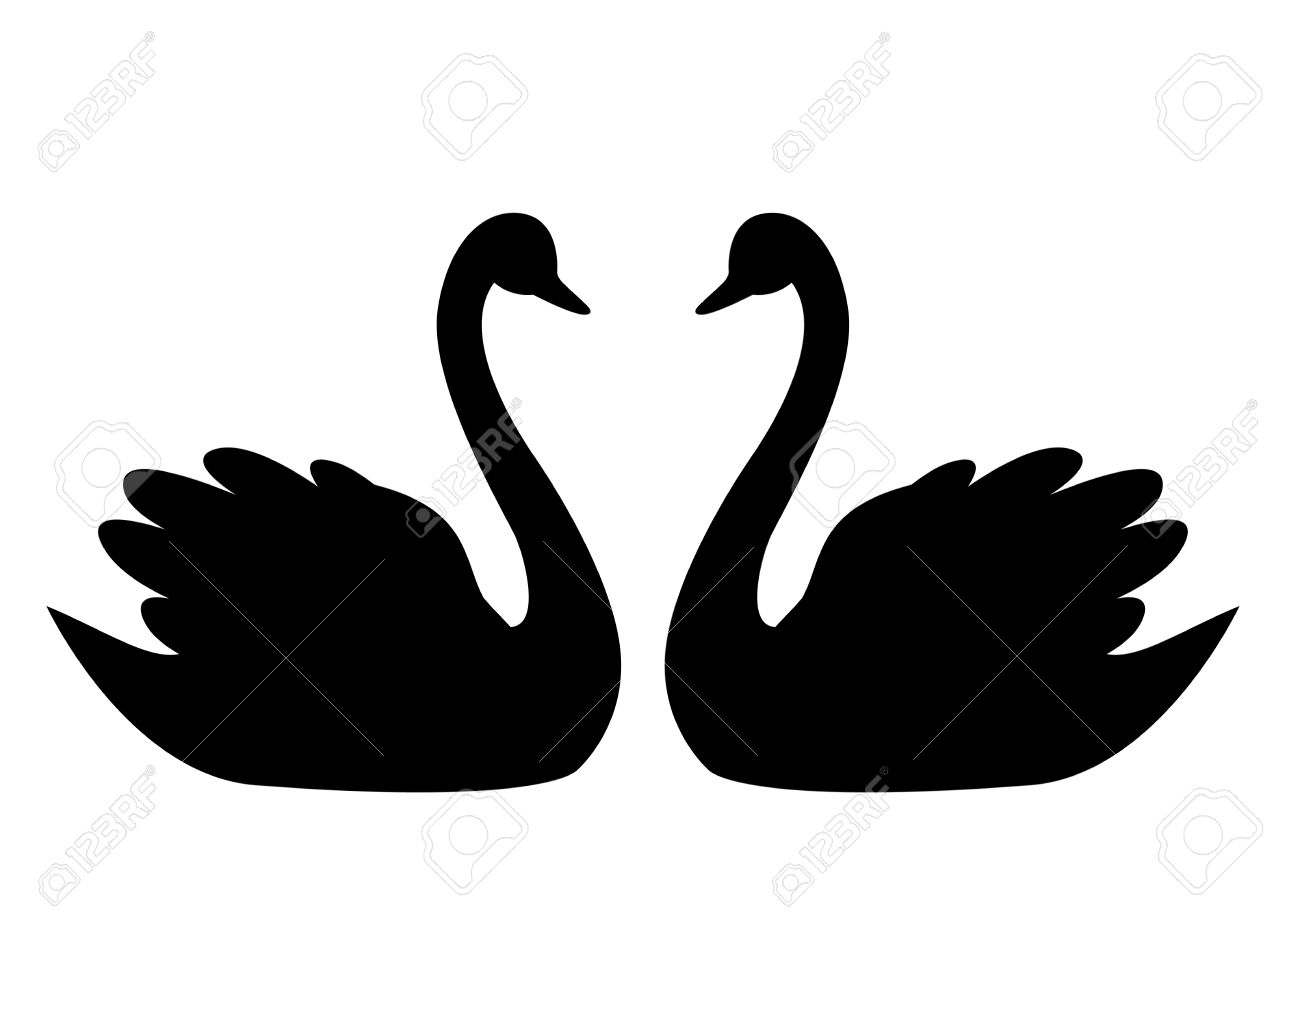 Swan Couple In Love Illustration / Clipart Isolated On White.